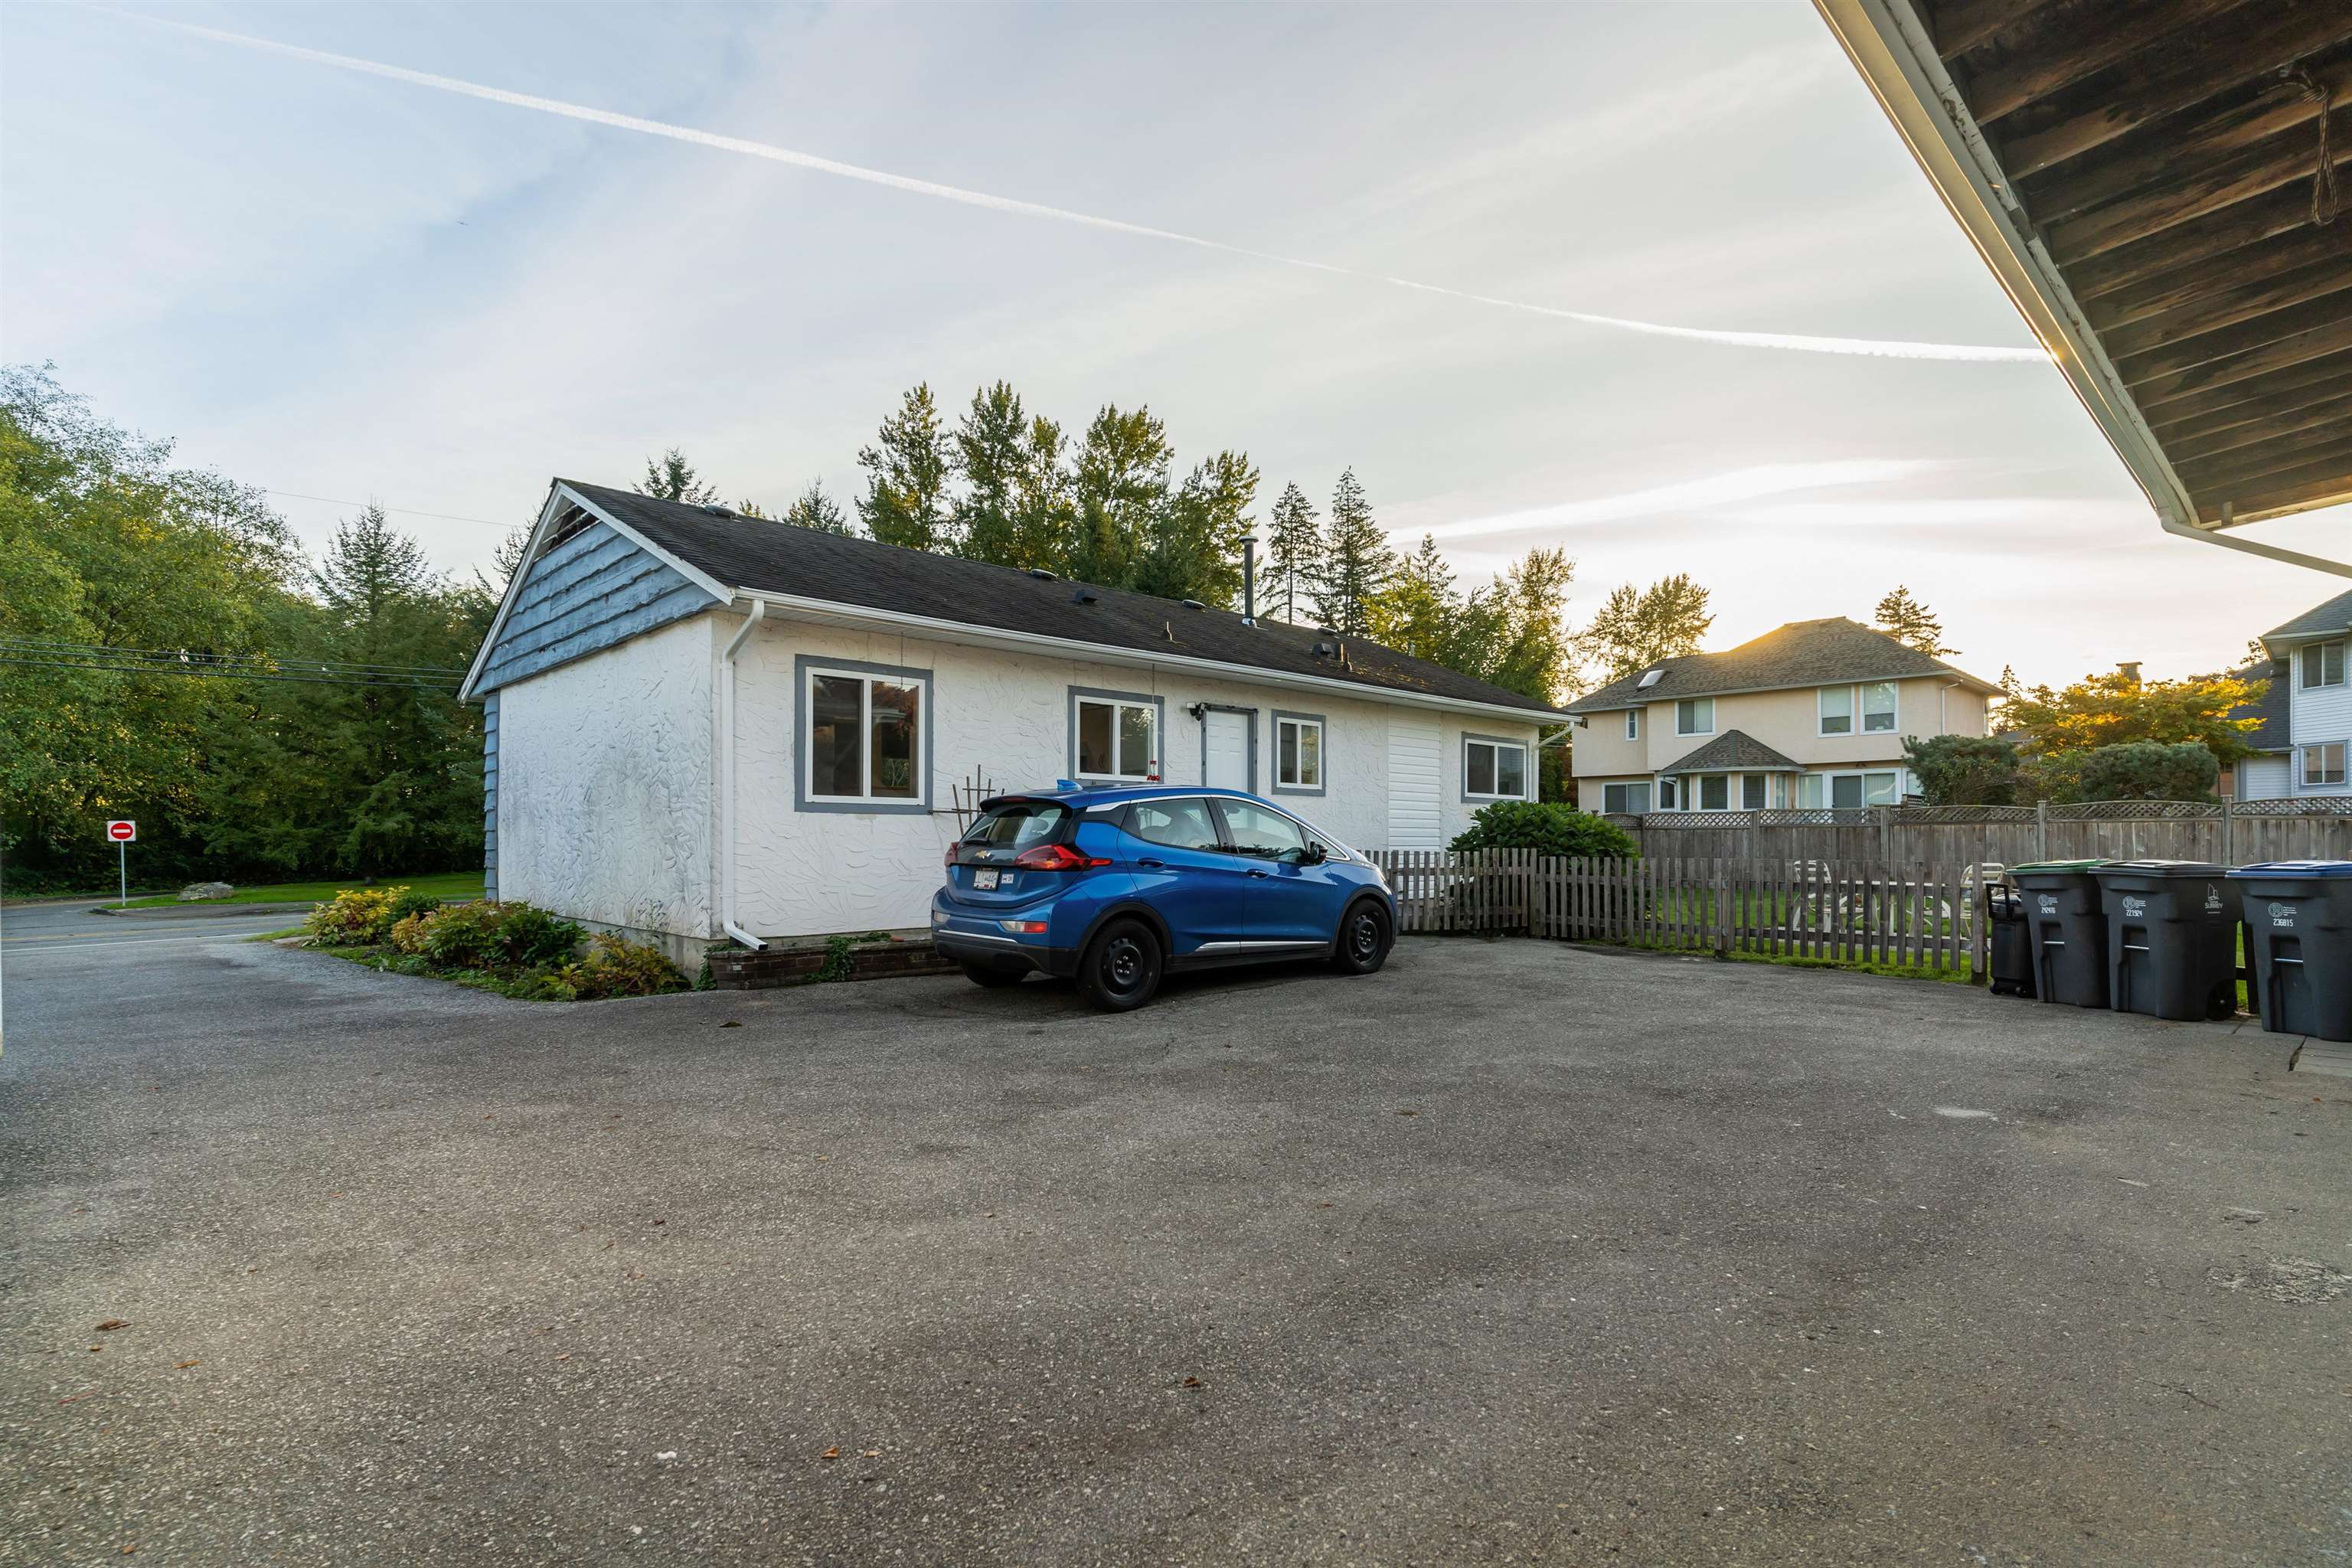 16527 84 AVENUE - Fleetwood Tynehead House/Single Family for sale, 2 Bedrooms (R2625496) - #29